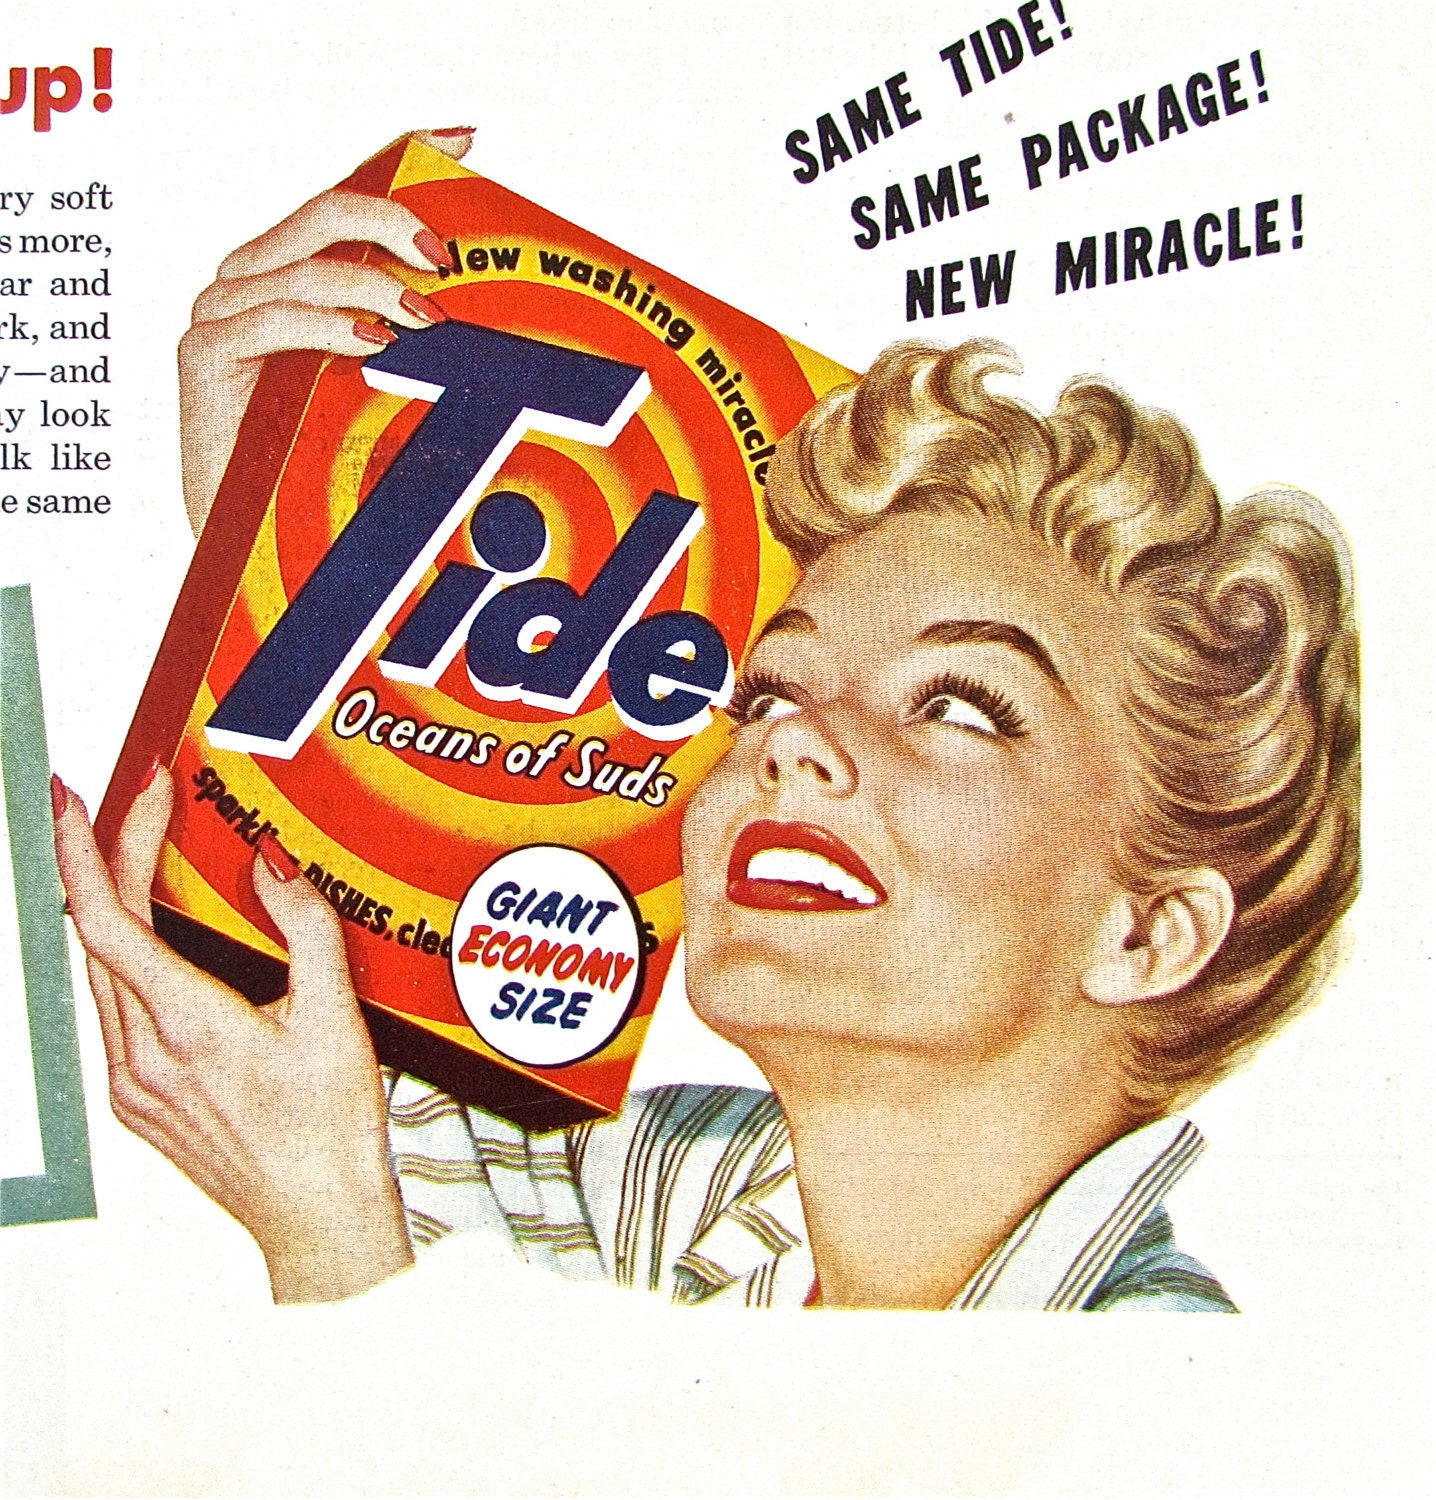 1950s Vintage Laundry Ad Tide Detergent furthermore South African Lobster Tail besides 1960s Makeup Ads moreover  on advers from the 1950s